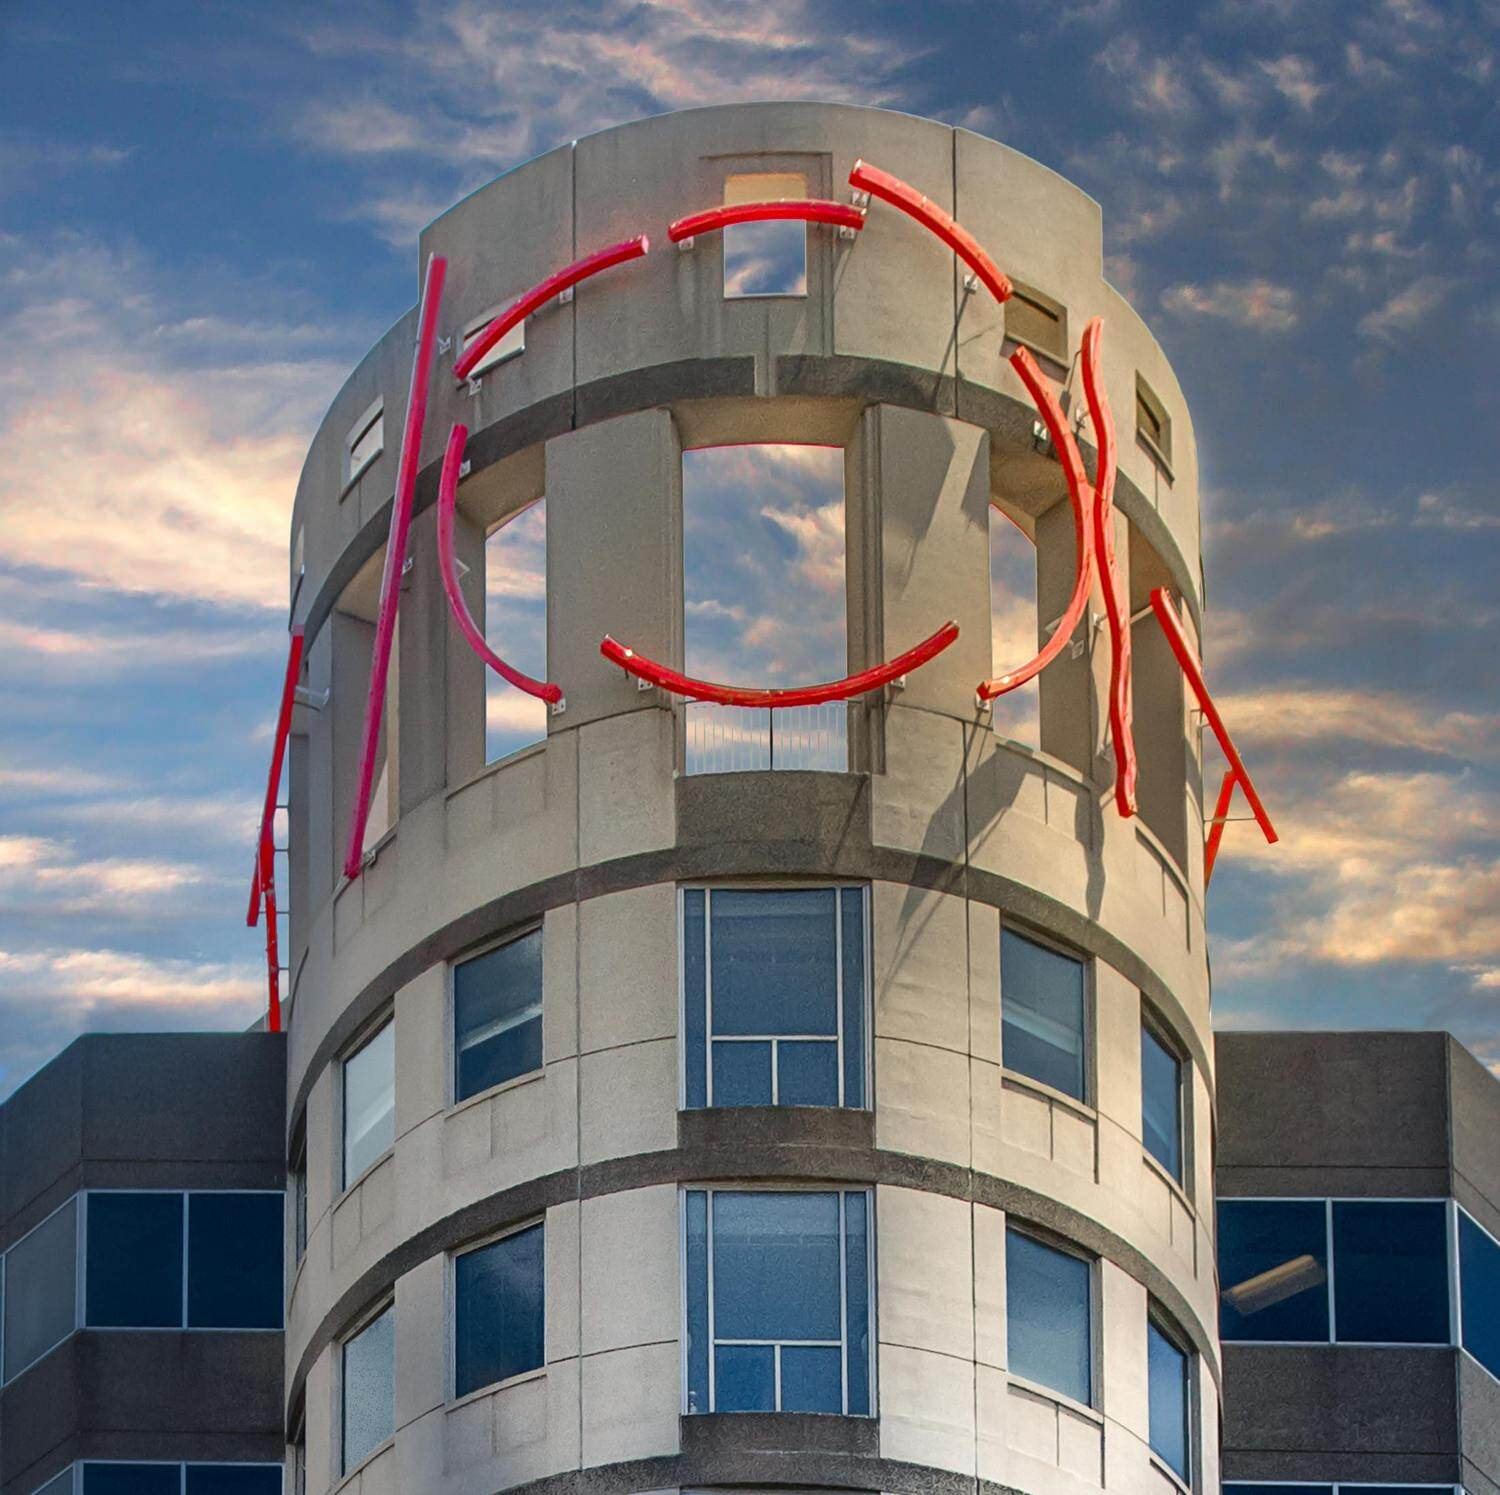 A tower with the sky reflected in its windows and red scupture on the exterior.